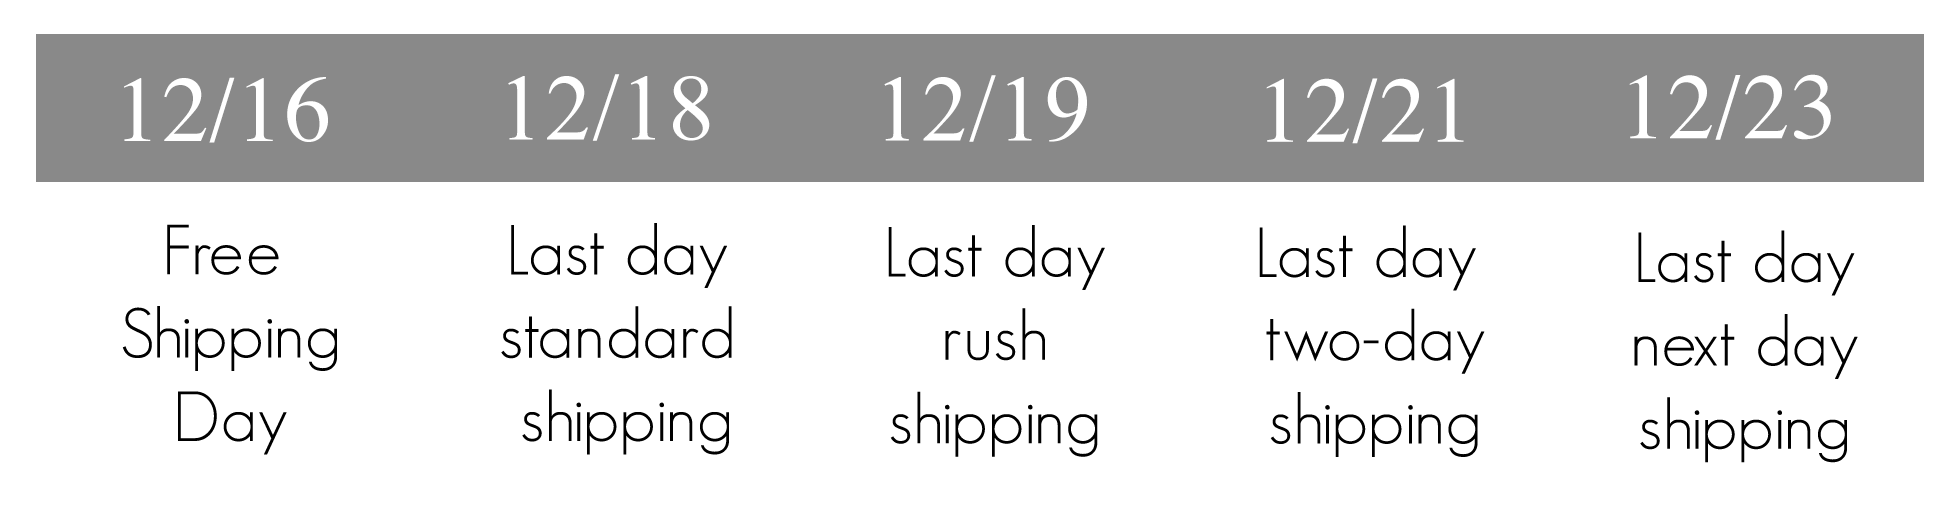 important holiday online shopping dates